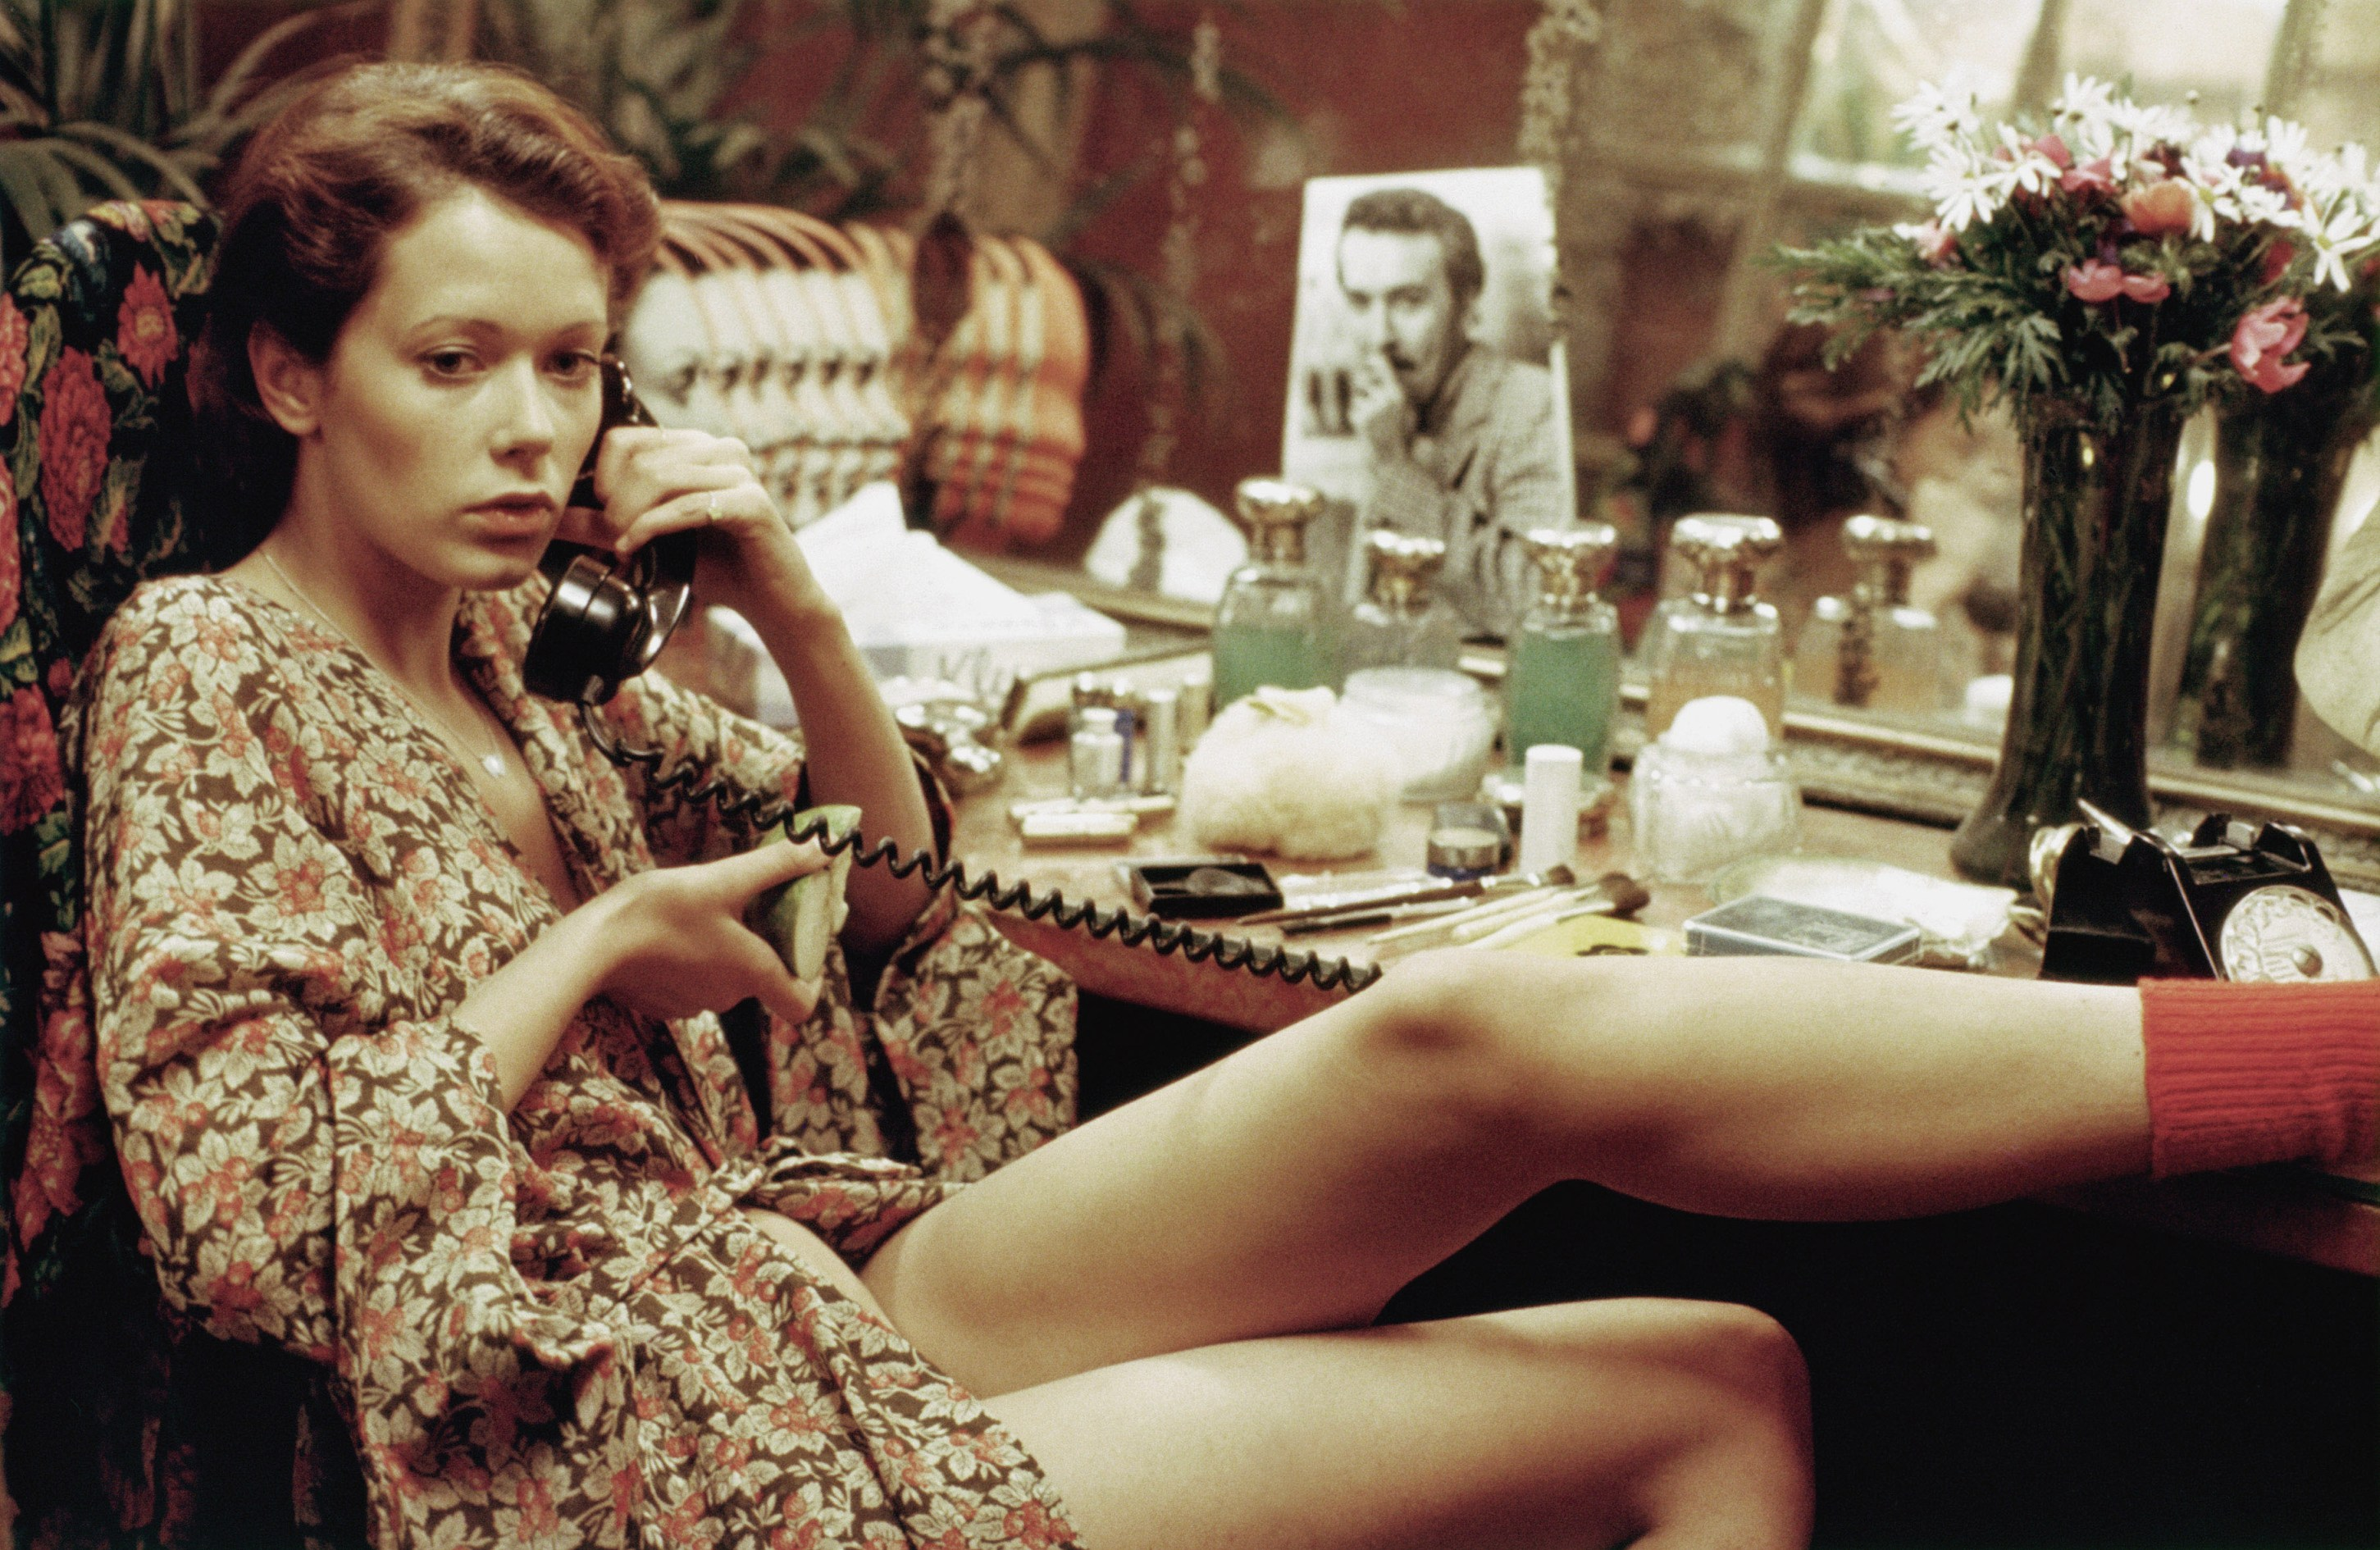 sylvia kristel photo gallery   high quality pics of sylvia